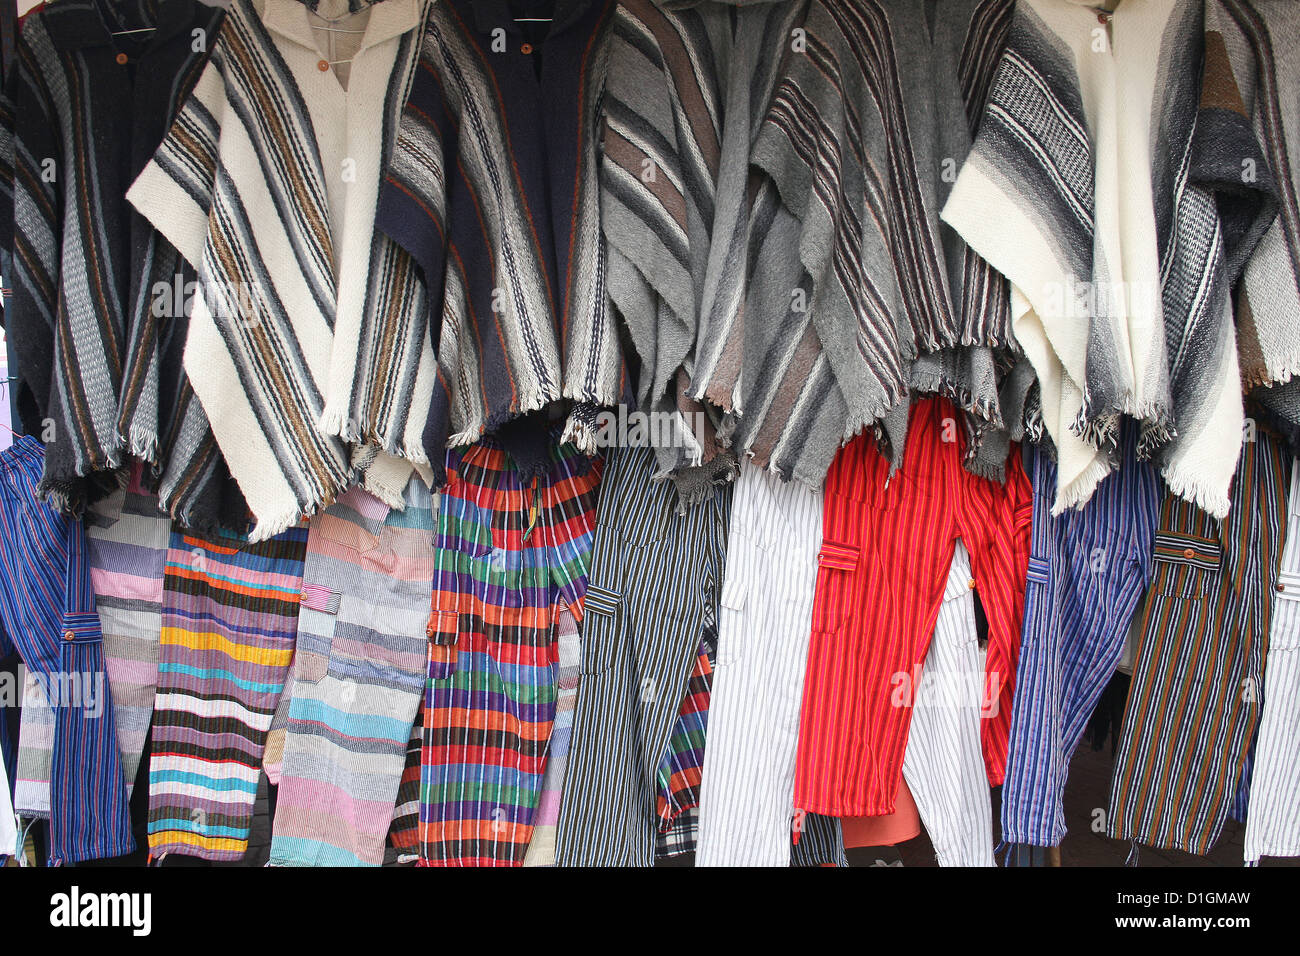 Rows of handmade colorful ponchos and pants for sale at the outdoor craft market in Cotacachi, Ecuador - Stock Image